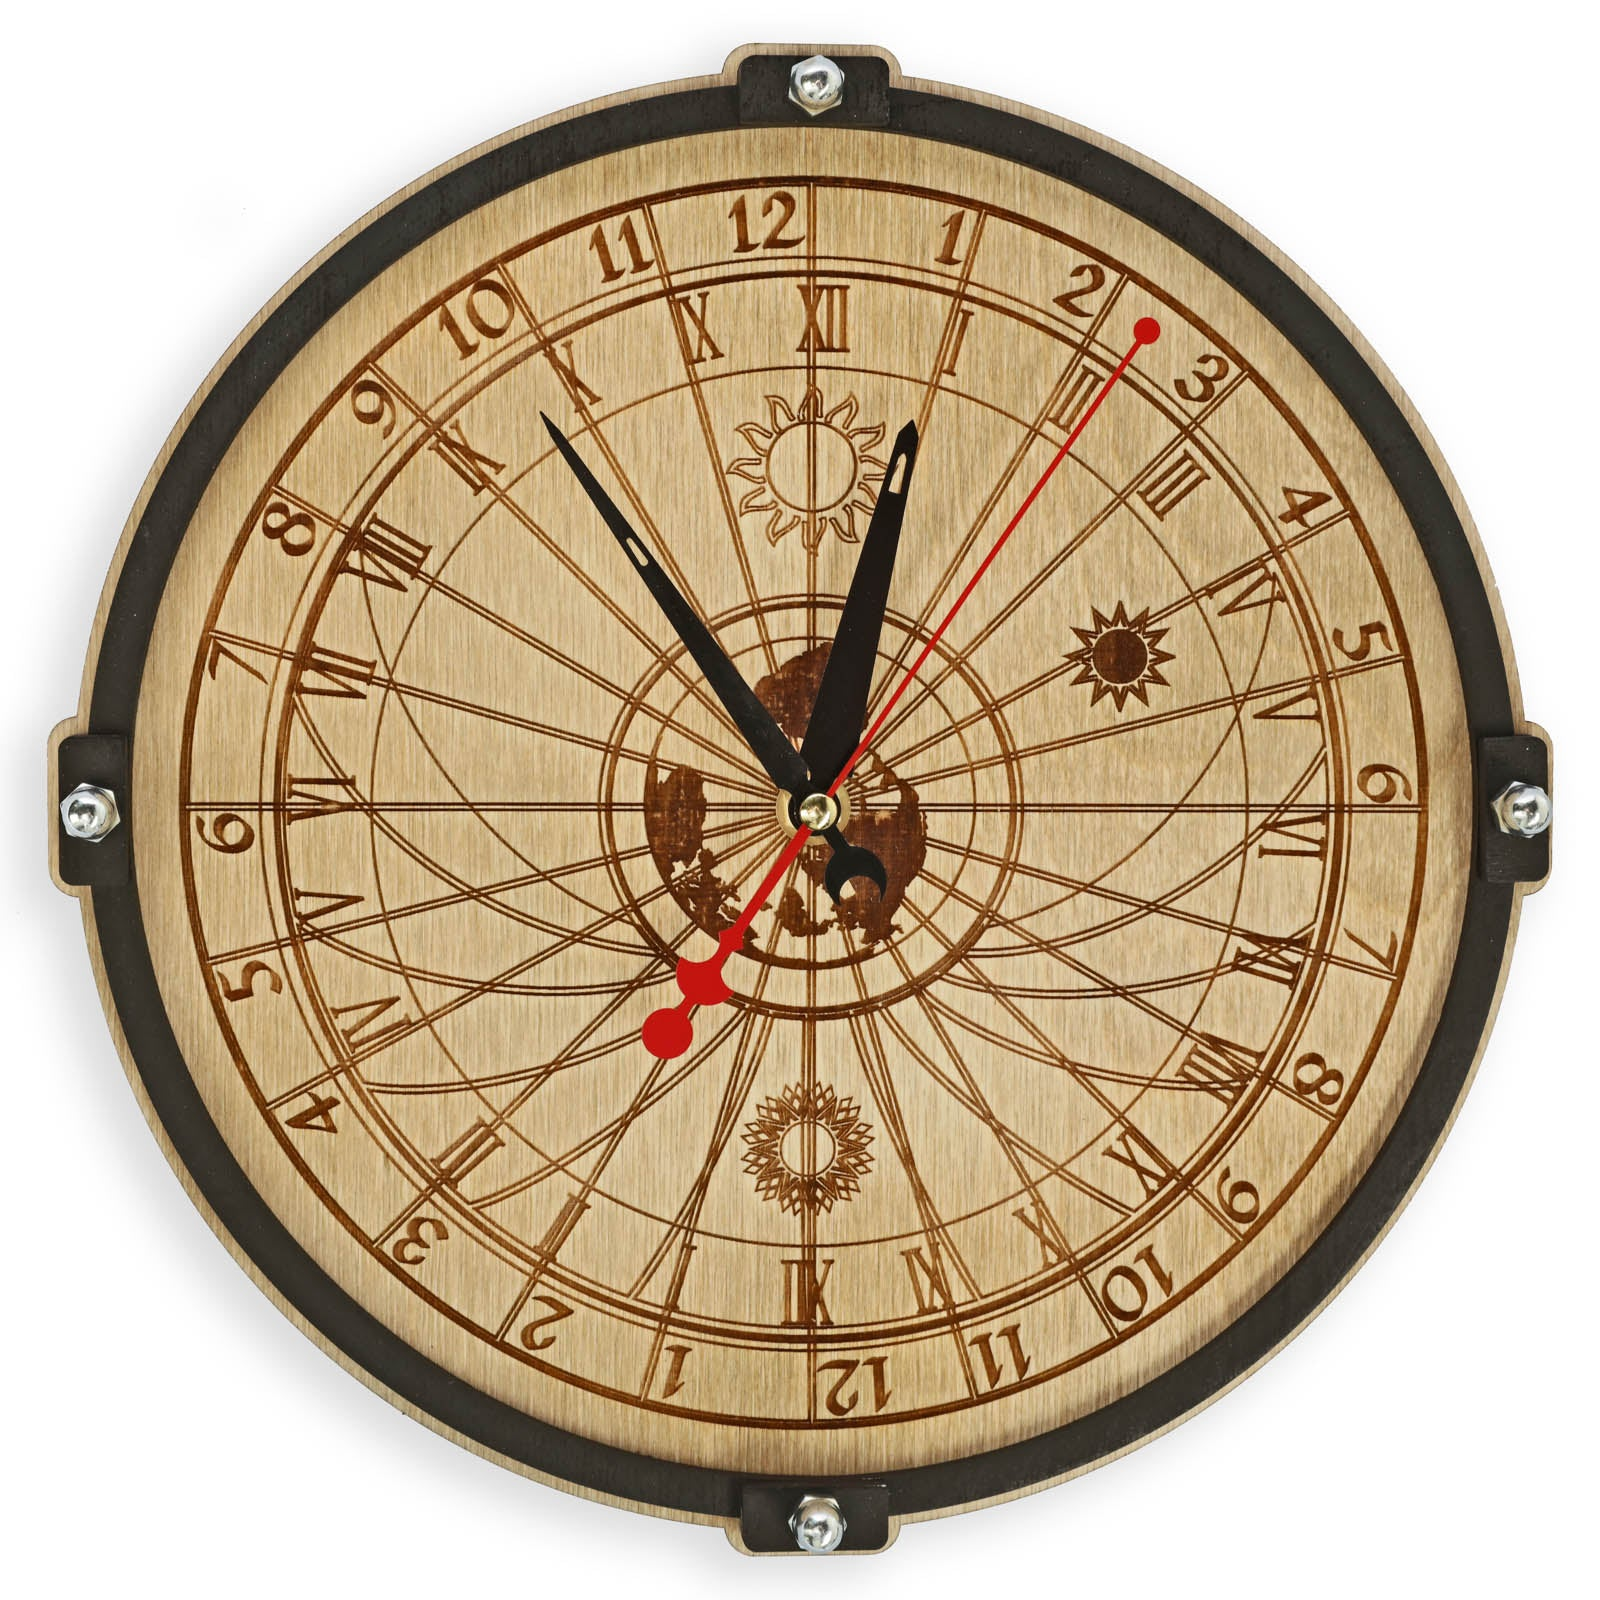 Buy Celestial Bodies 24 hour Wall Clock at WOODANDROOT for only $39.50